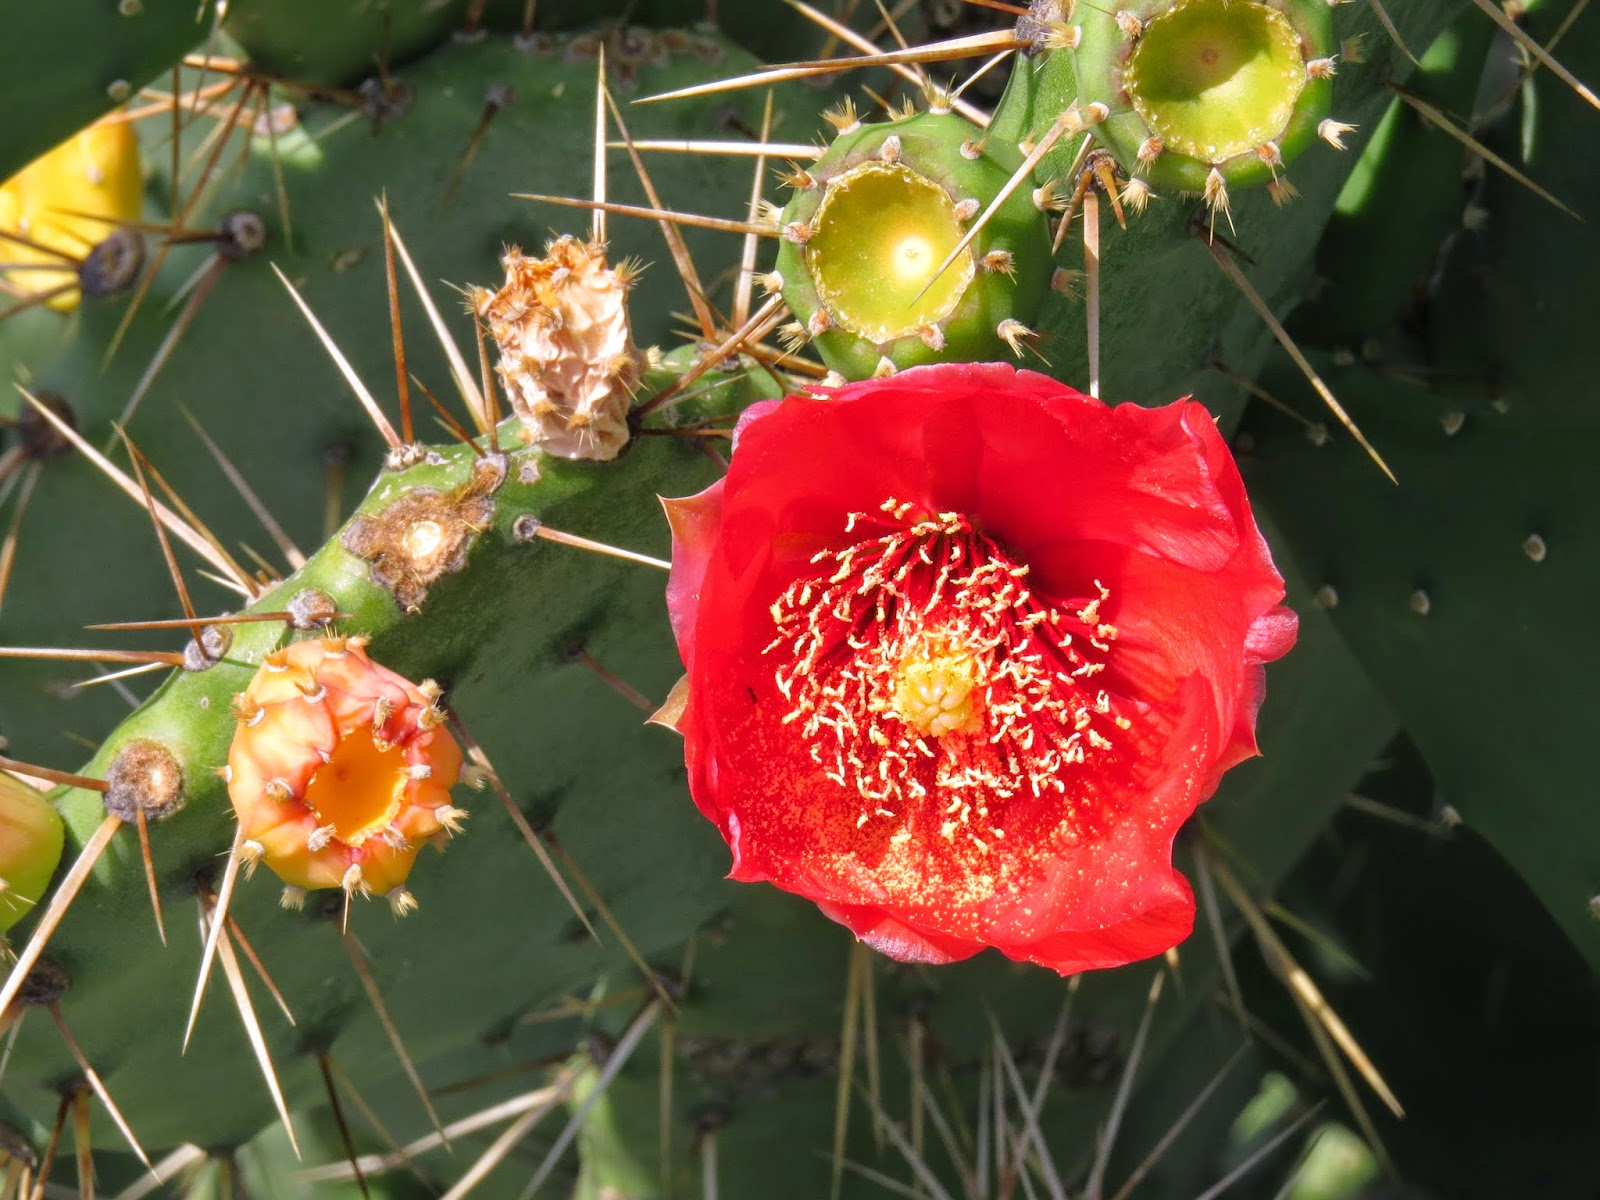 Flower of a prickly pear, Livorno